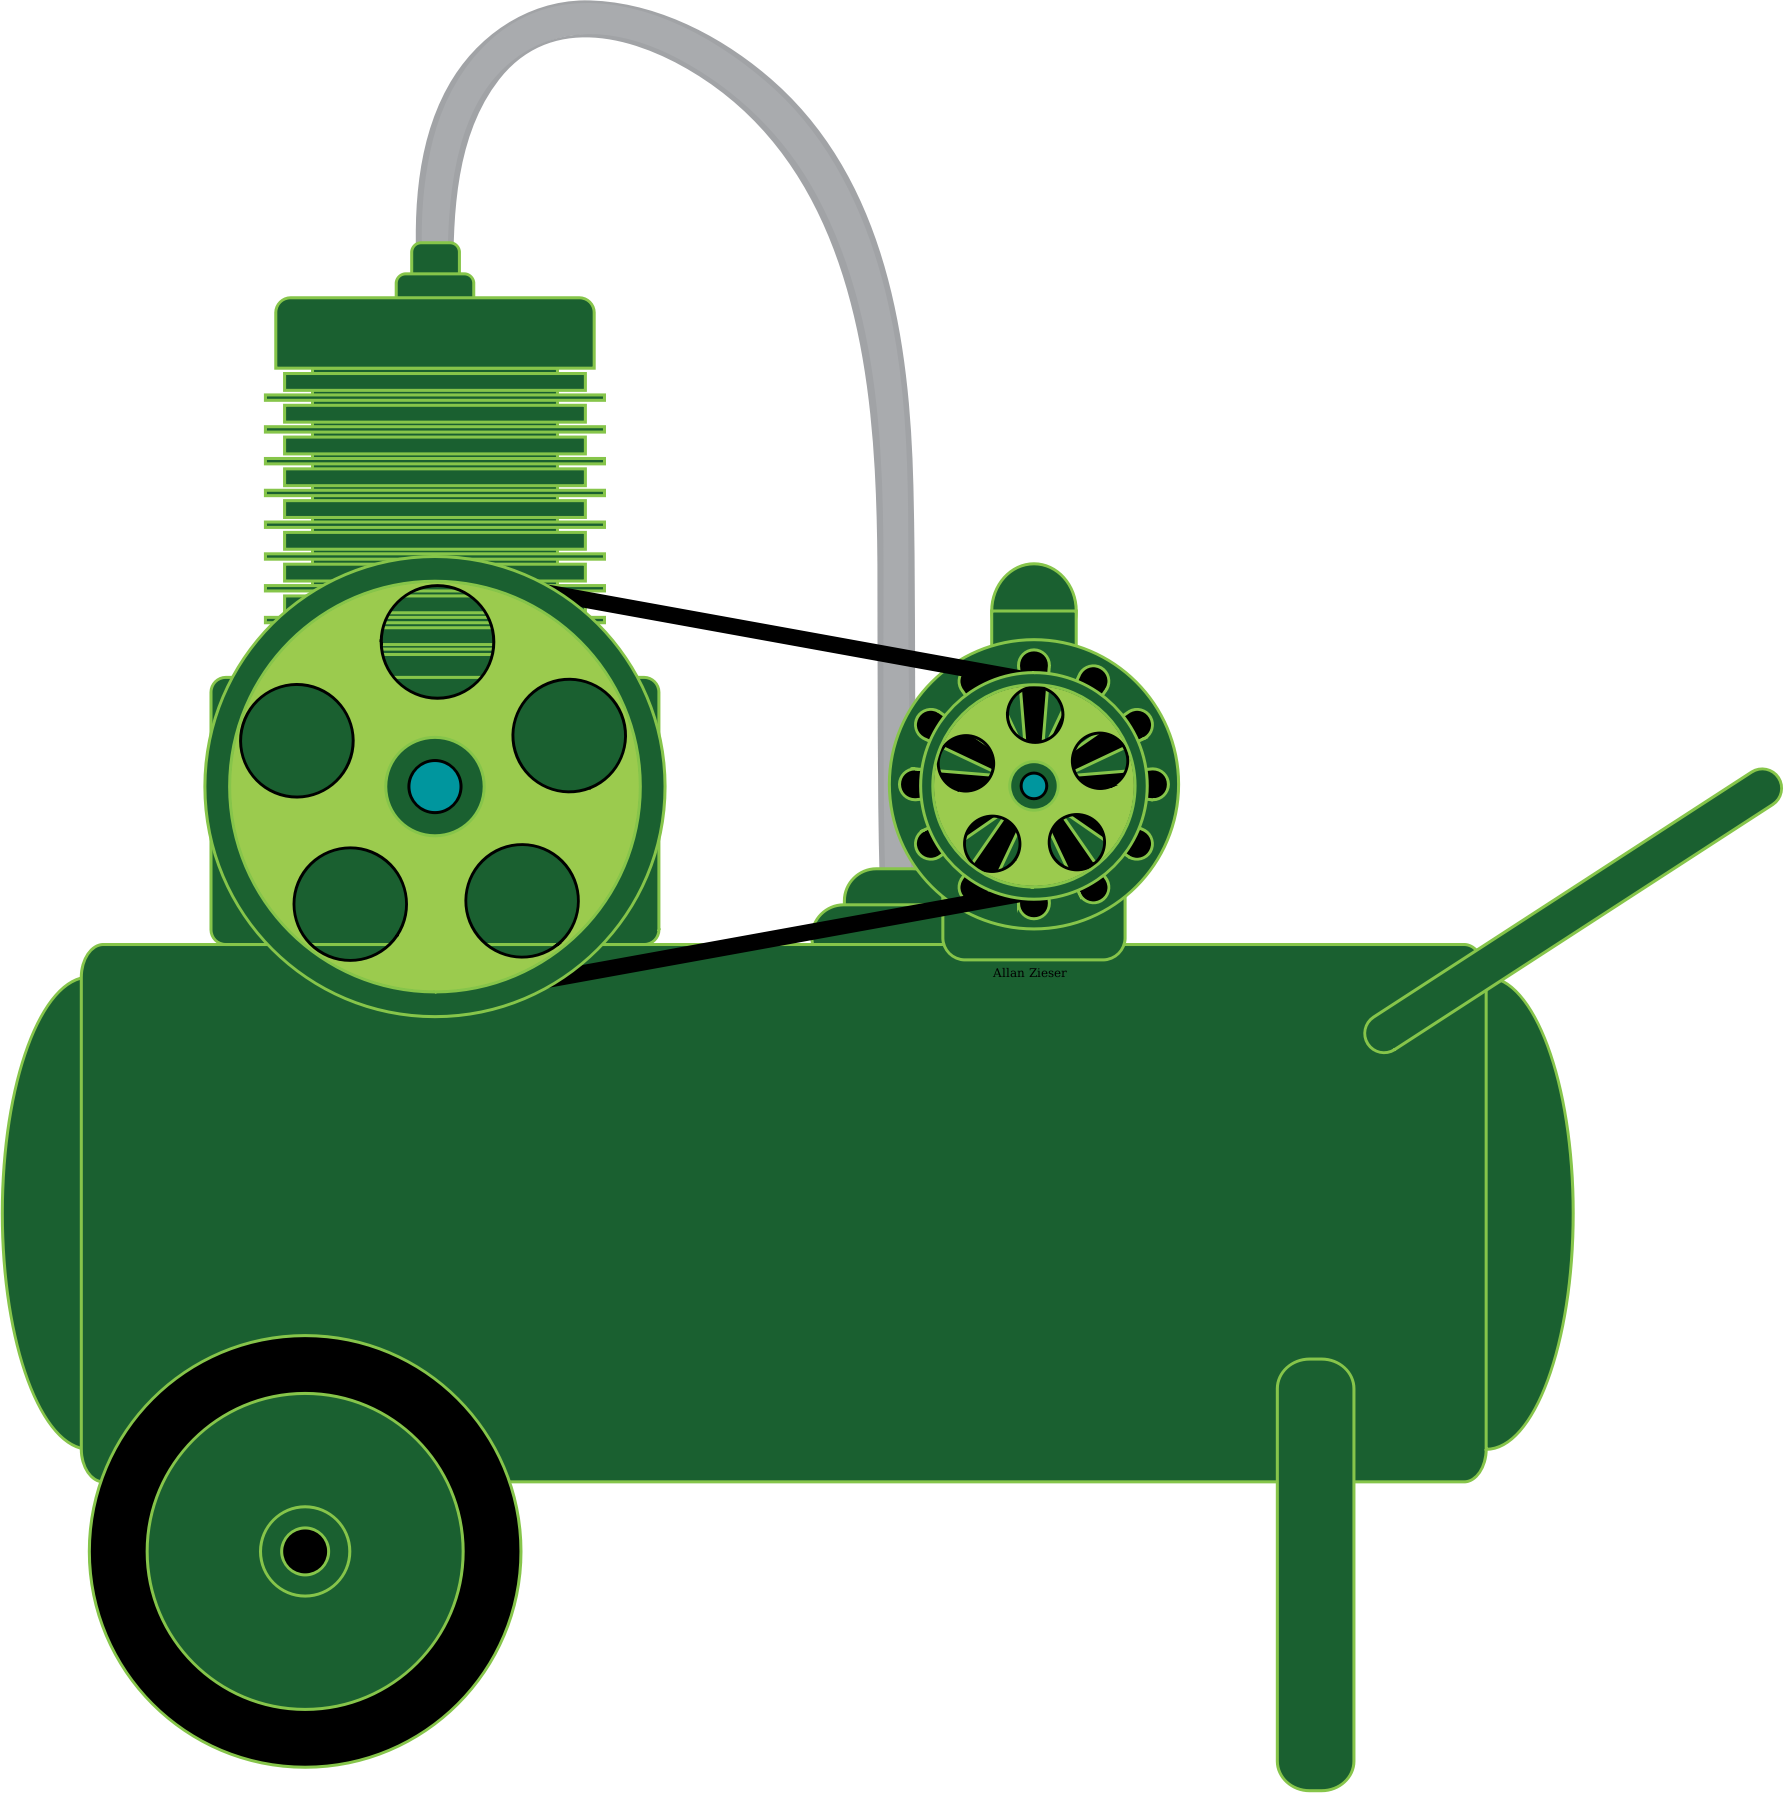 Computer clipart shopping. Shop compressor icons png